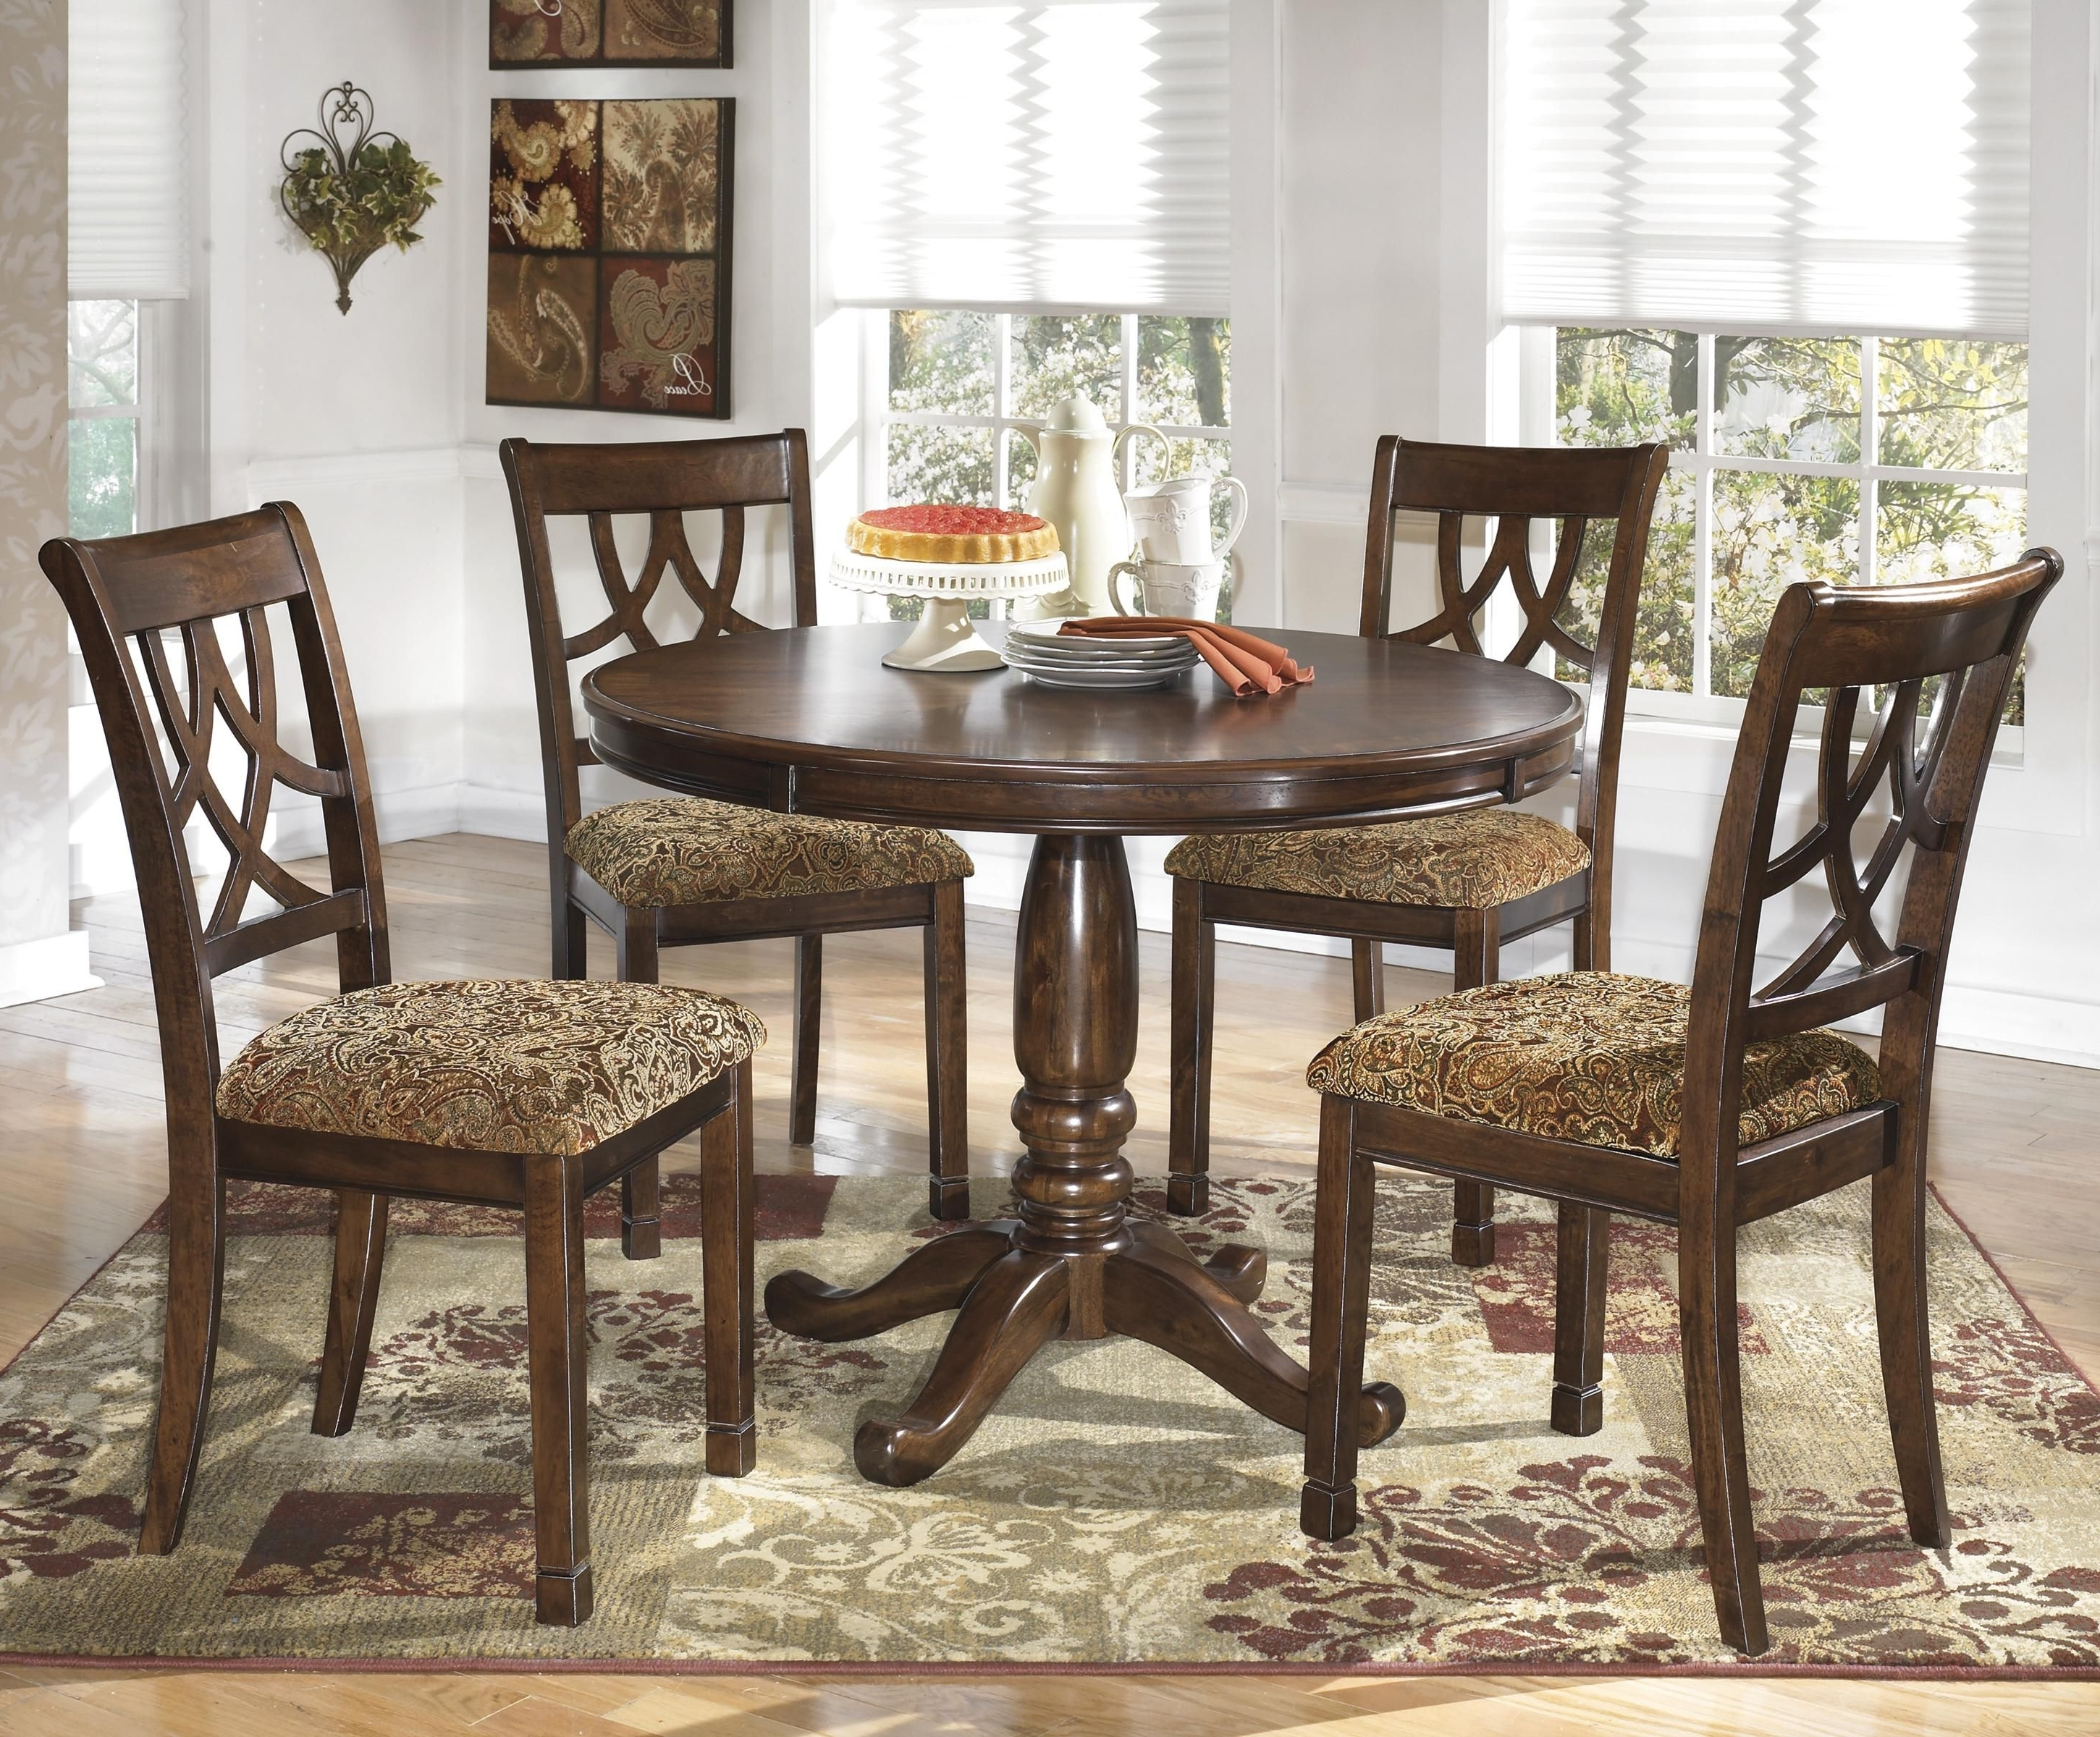 Craftsman 7 Piece Rectangular Extension Dining Sets With Arm & Uph Side Chairs Within Most Current Leahlyn 5 Piece Round Dining Table Setsignature Designashley (View 11 of 25)